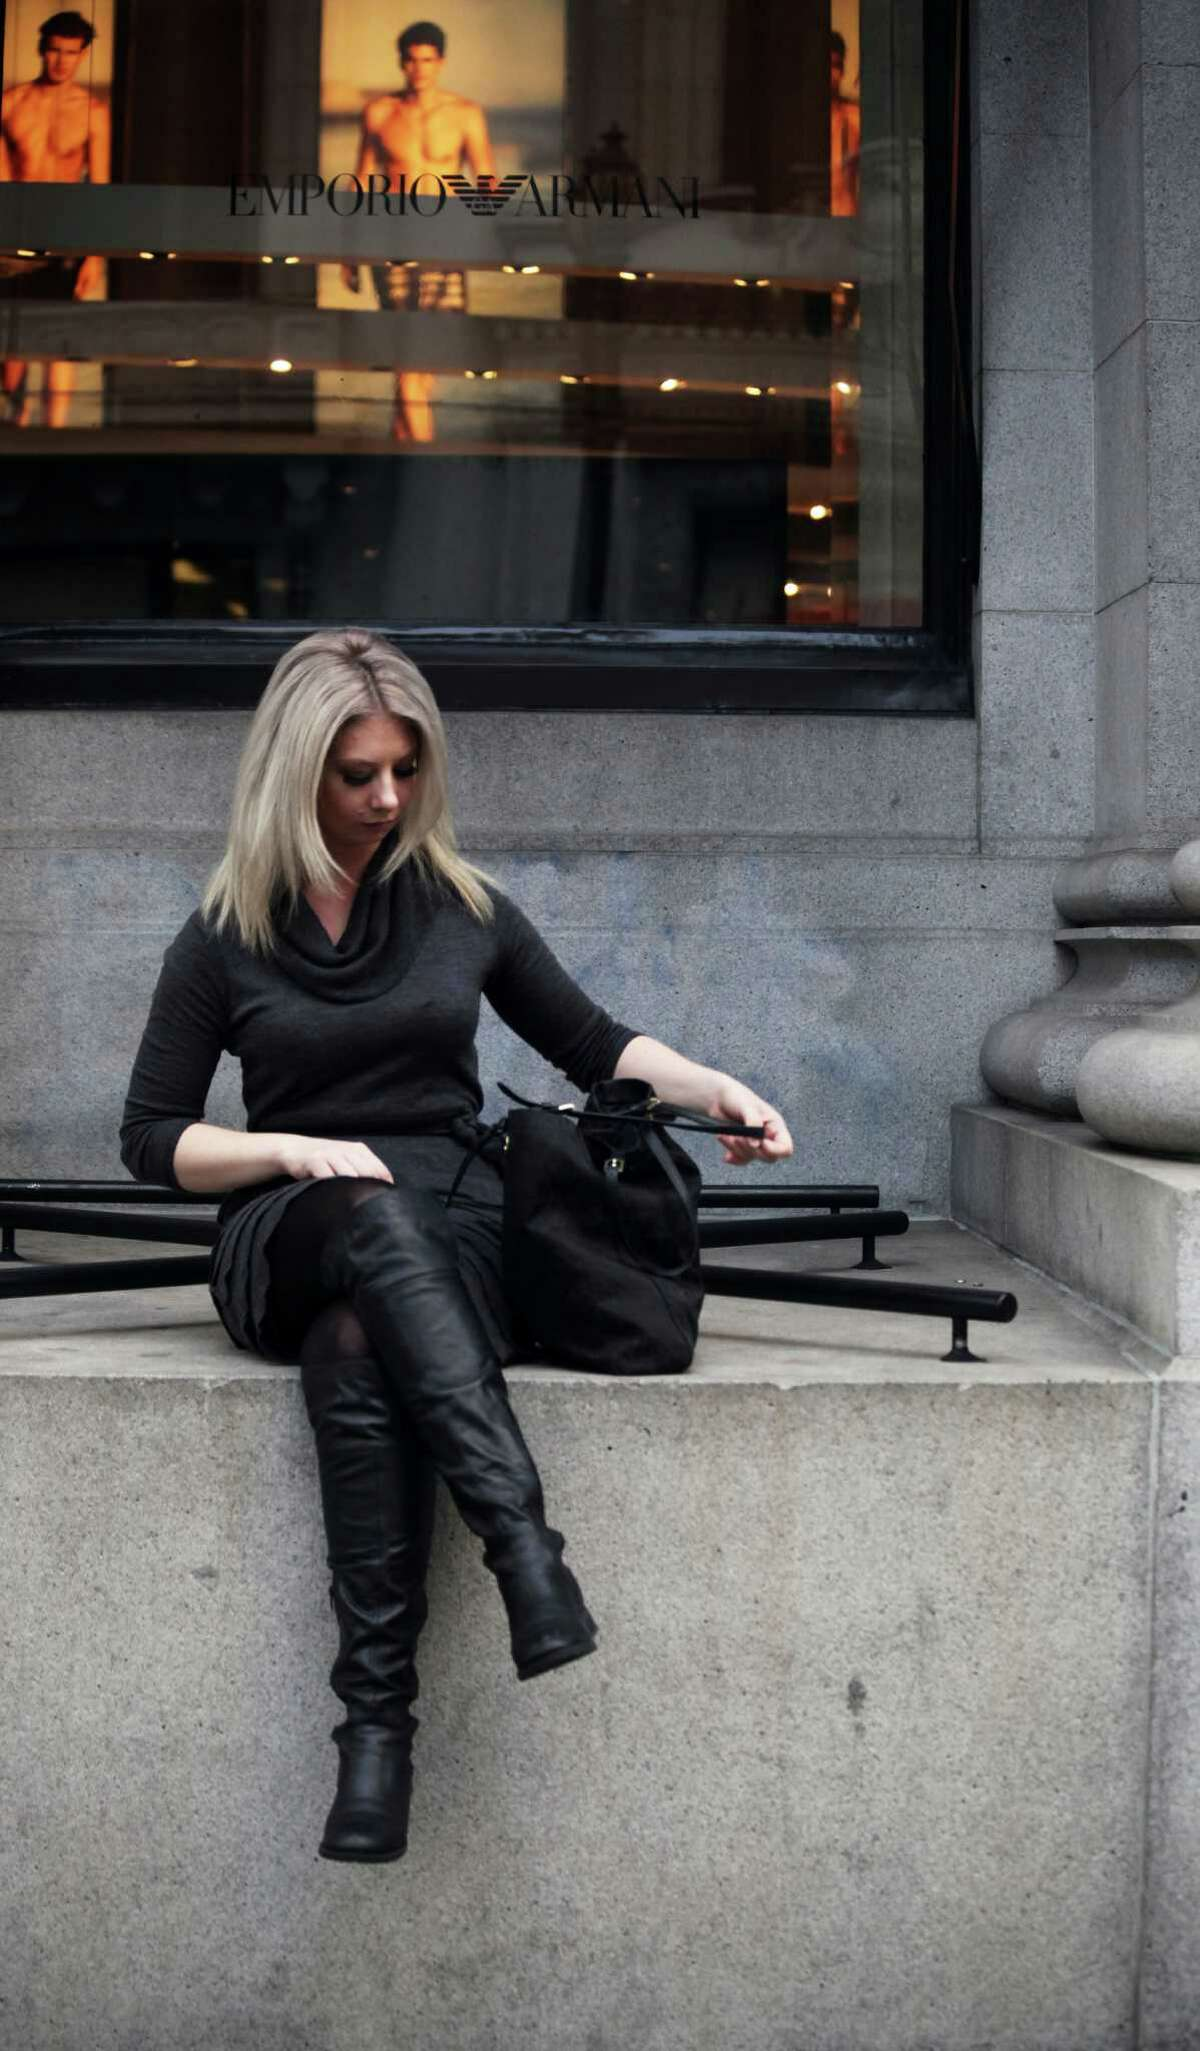 Ashley Lepesh perches in front of the Armani Imports building in the Financial District.